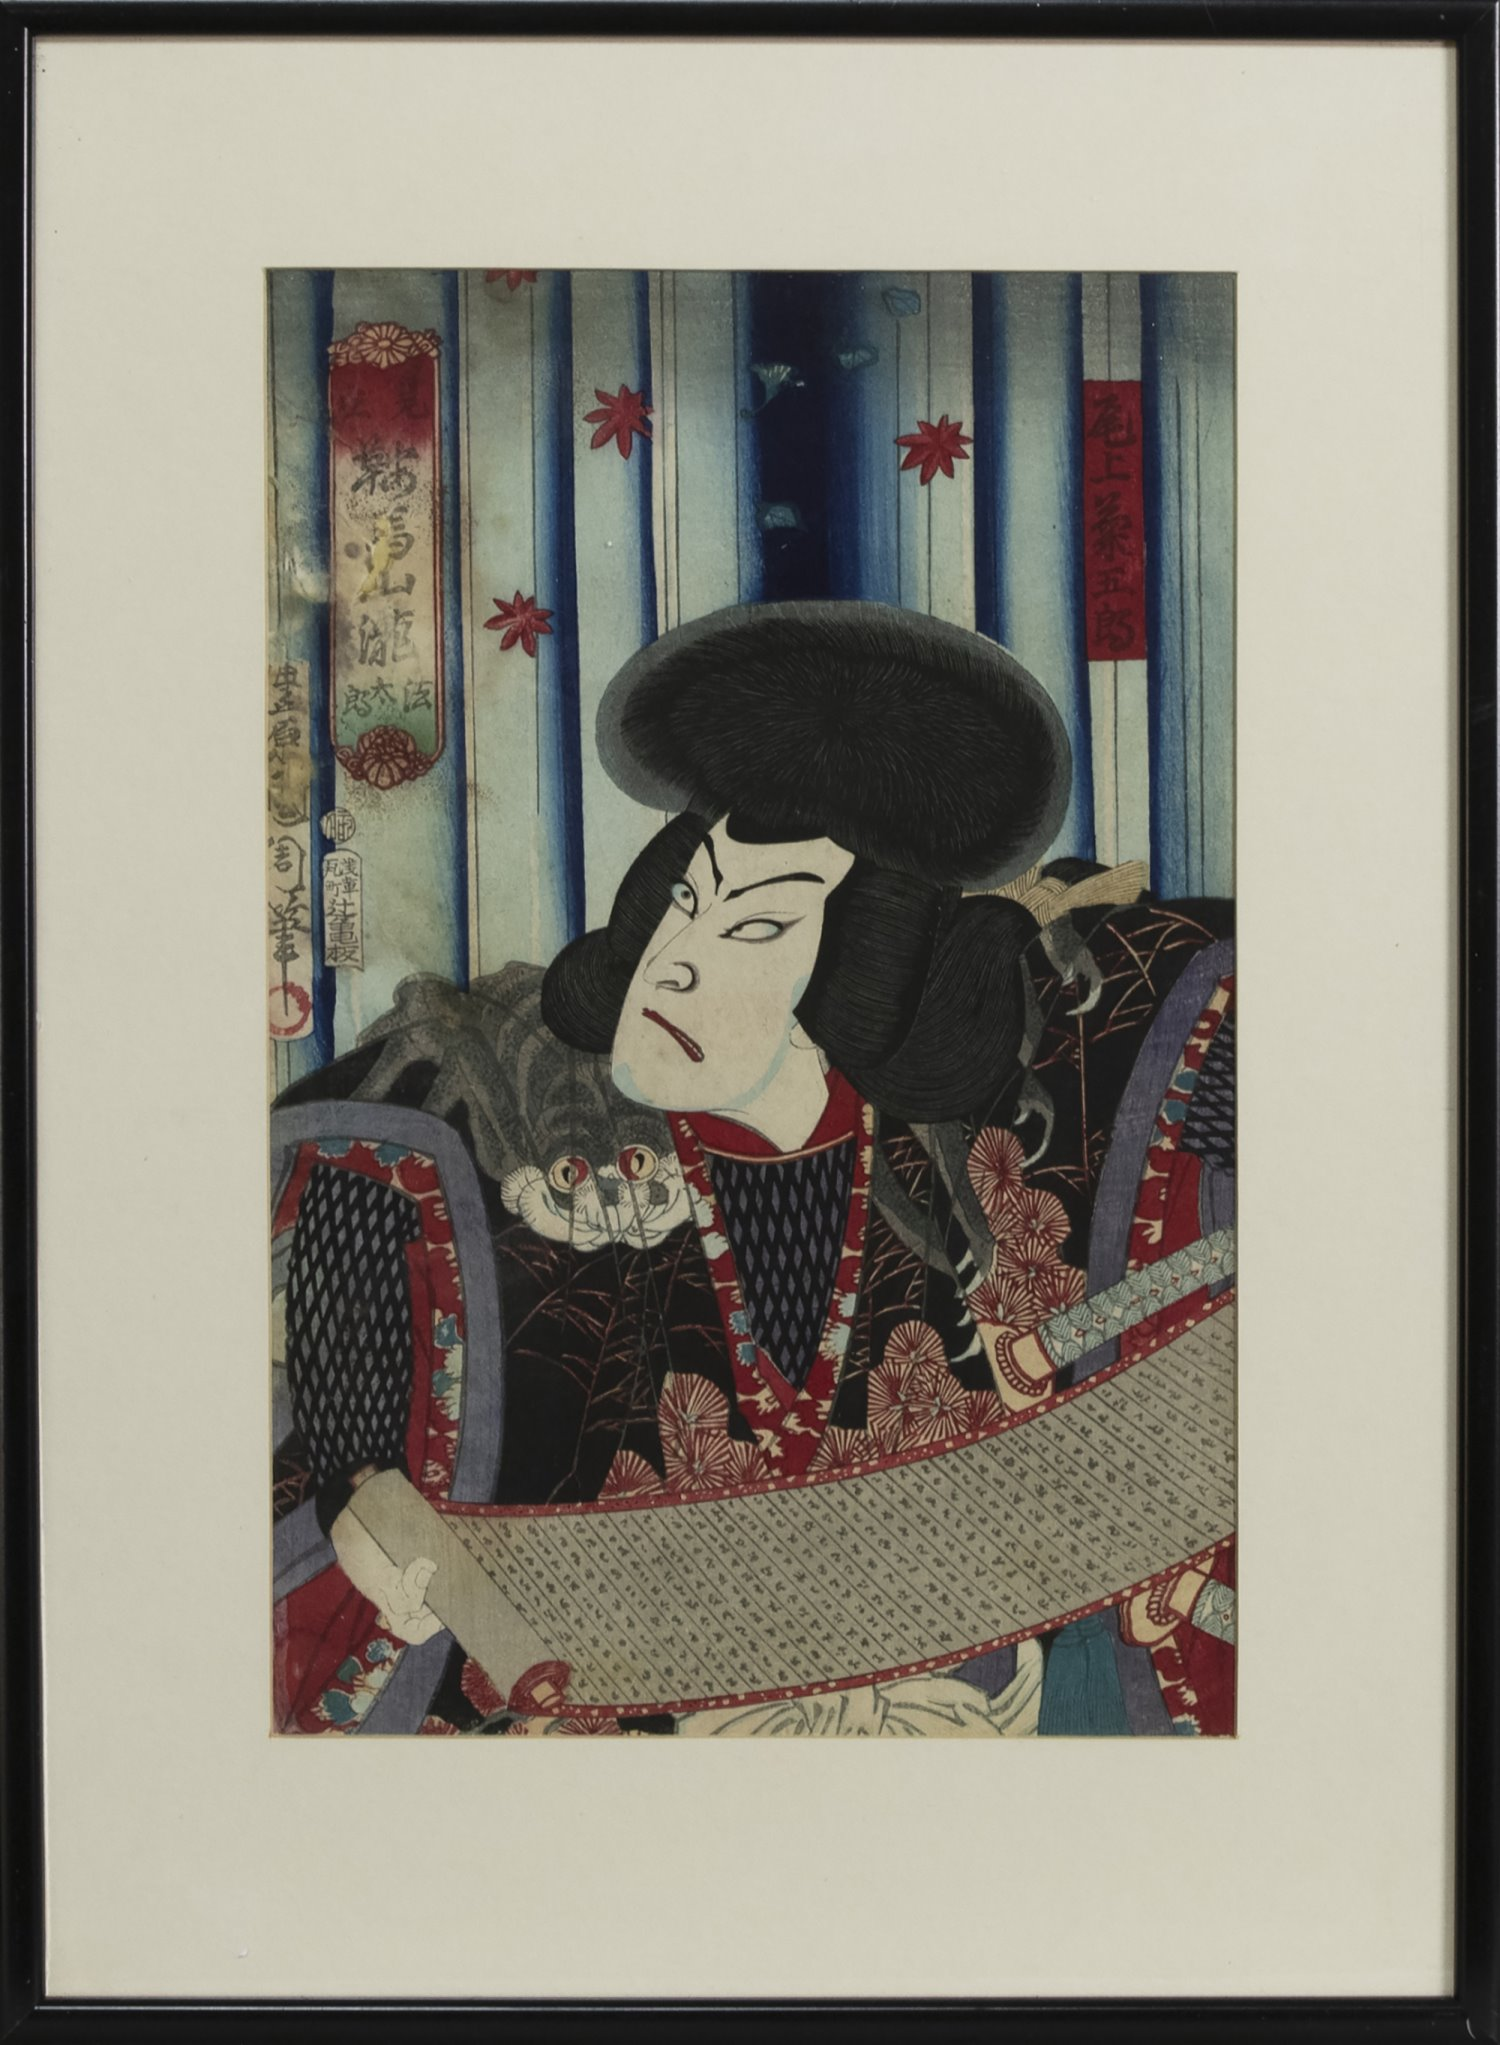 AN EARLY 20TH CENTURY JAPANESE WOODBLOCK PRINT